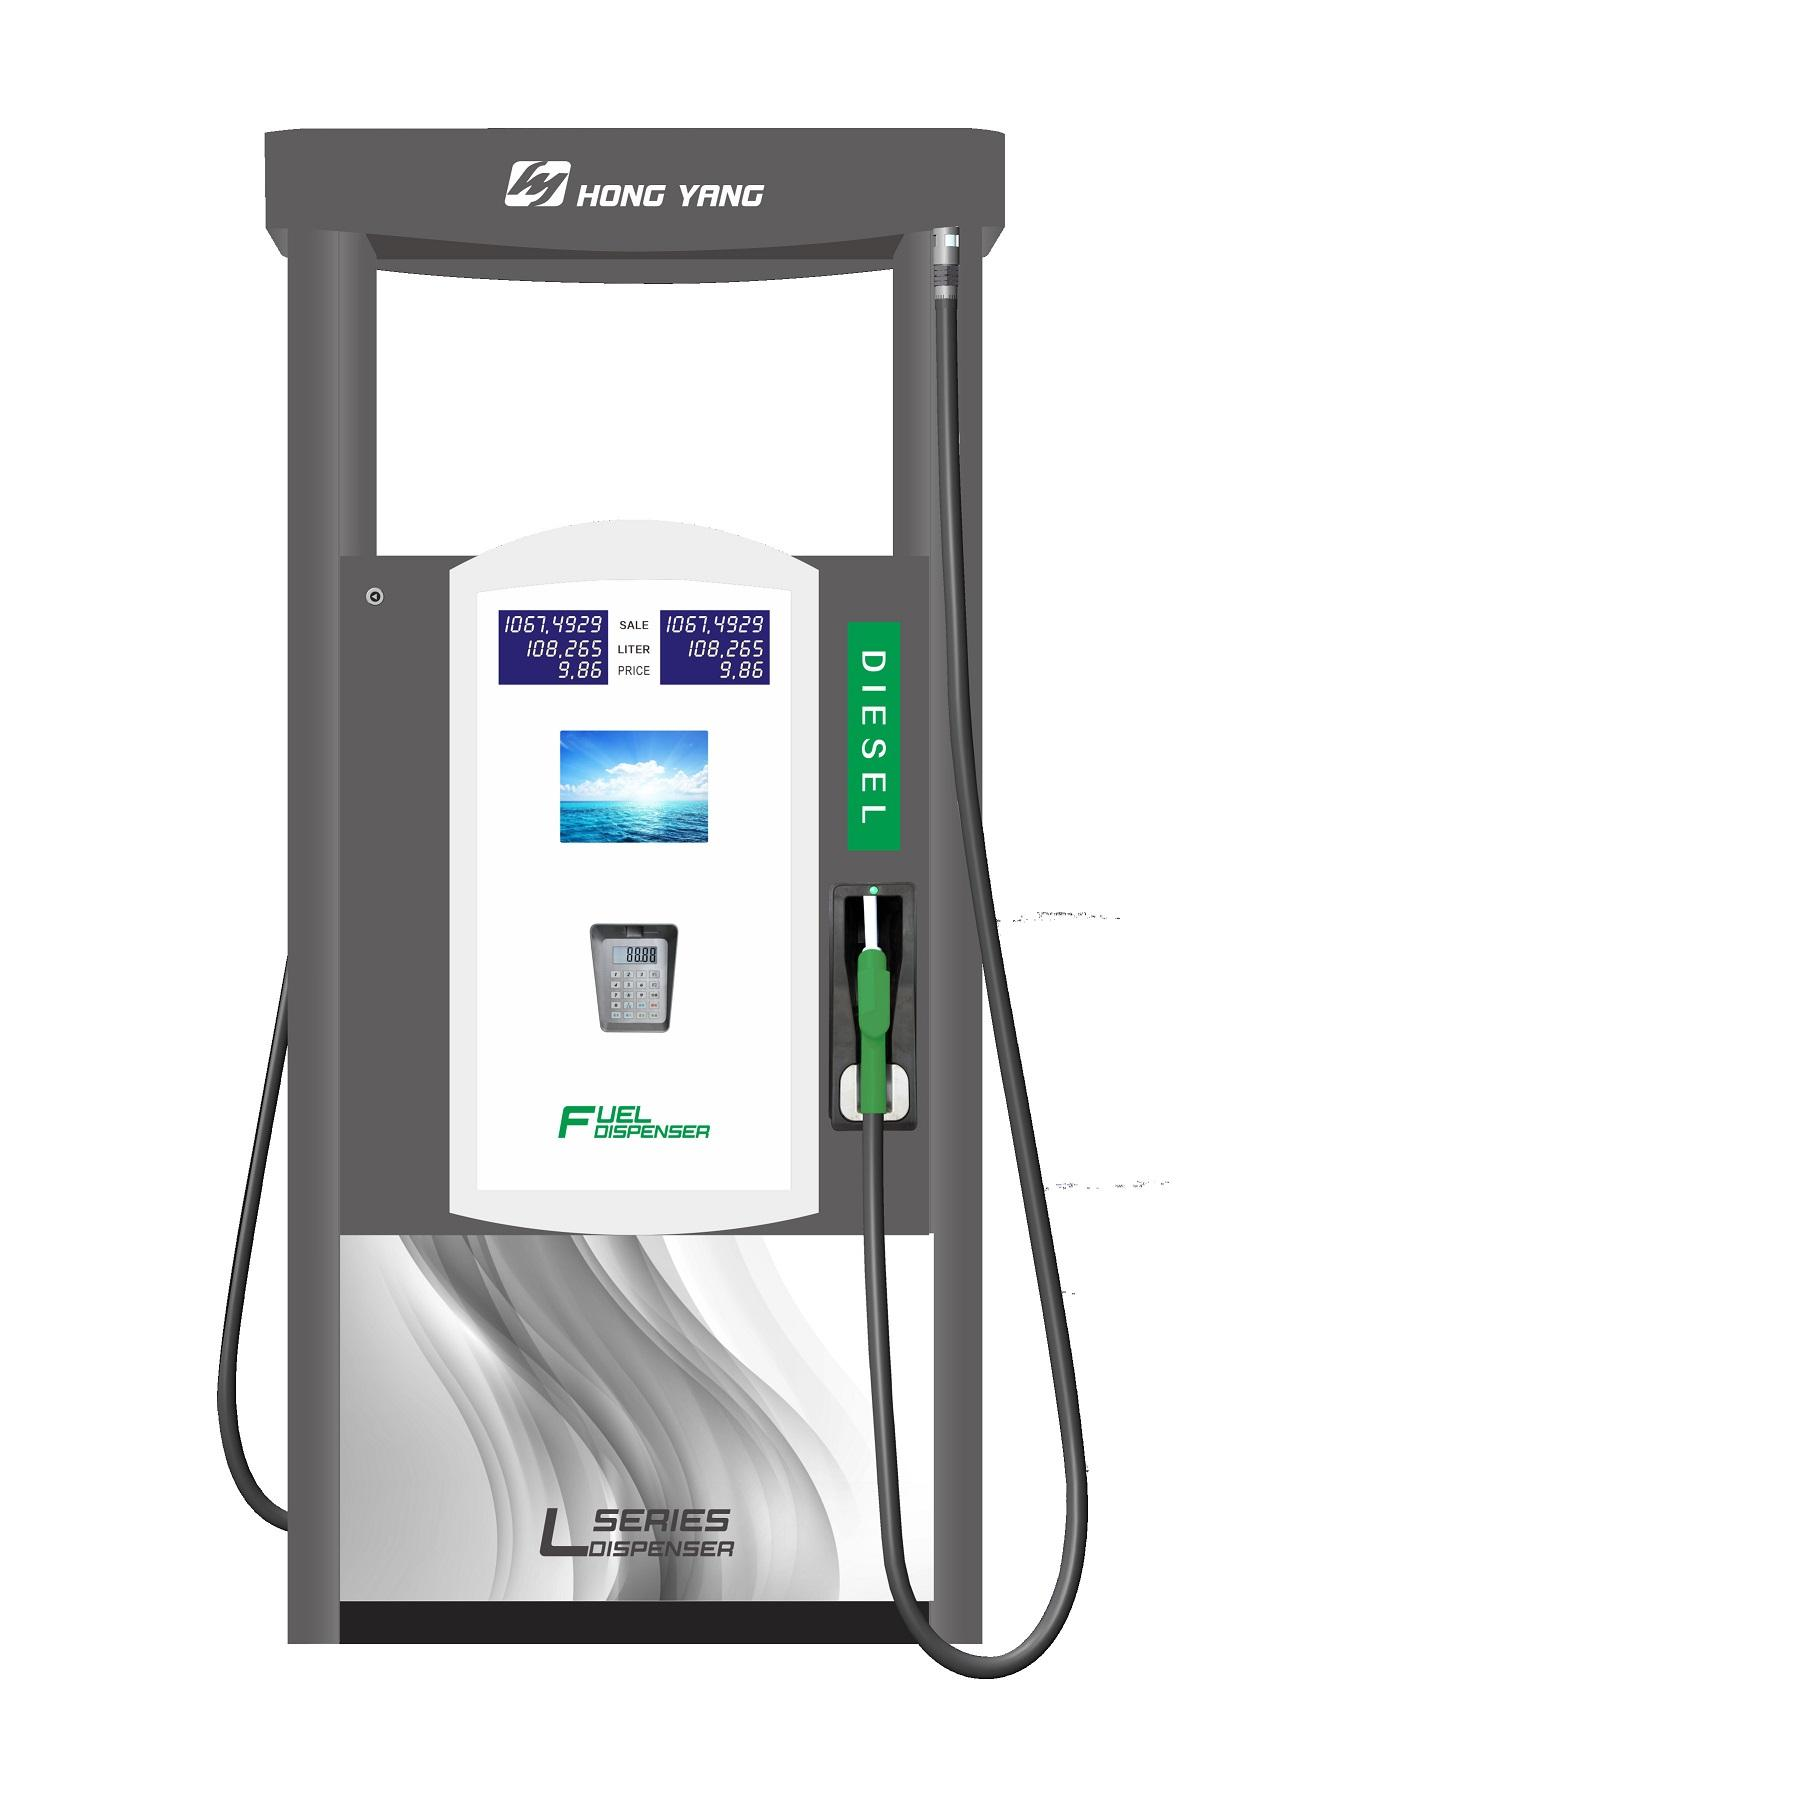 petrol dispenser machine